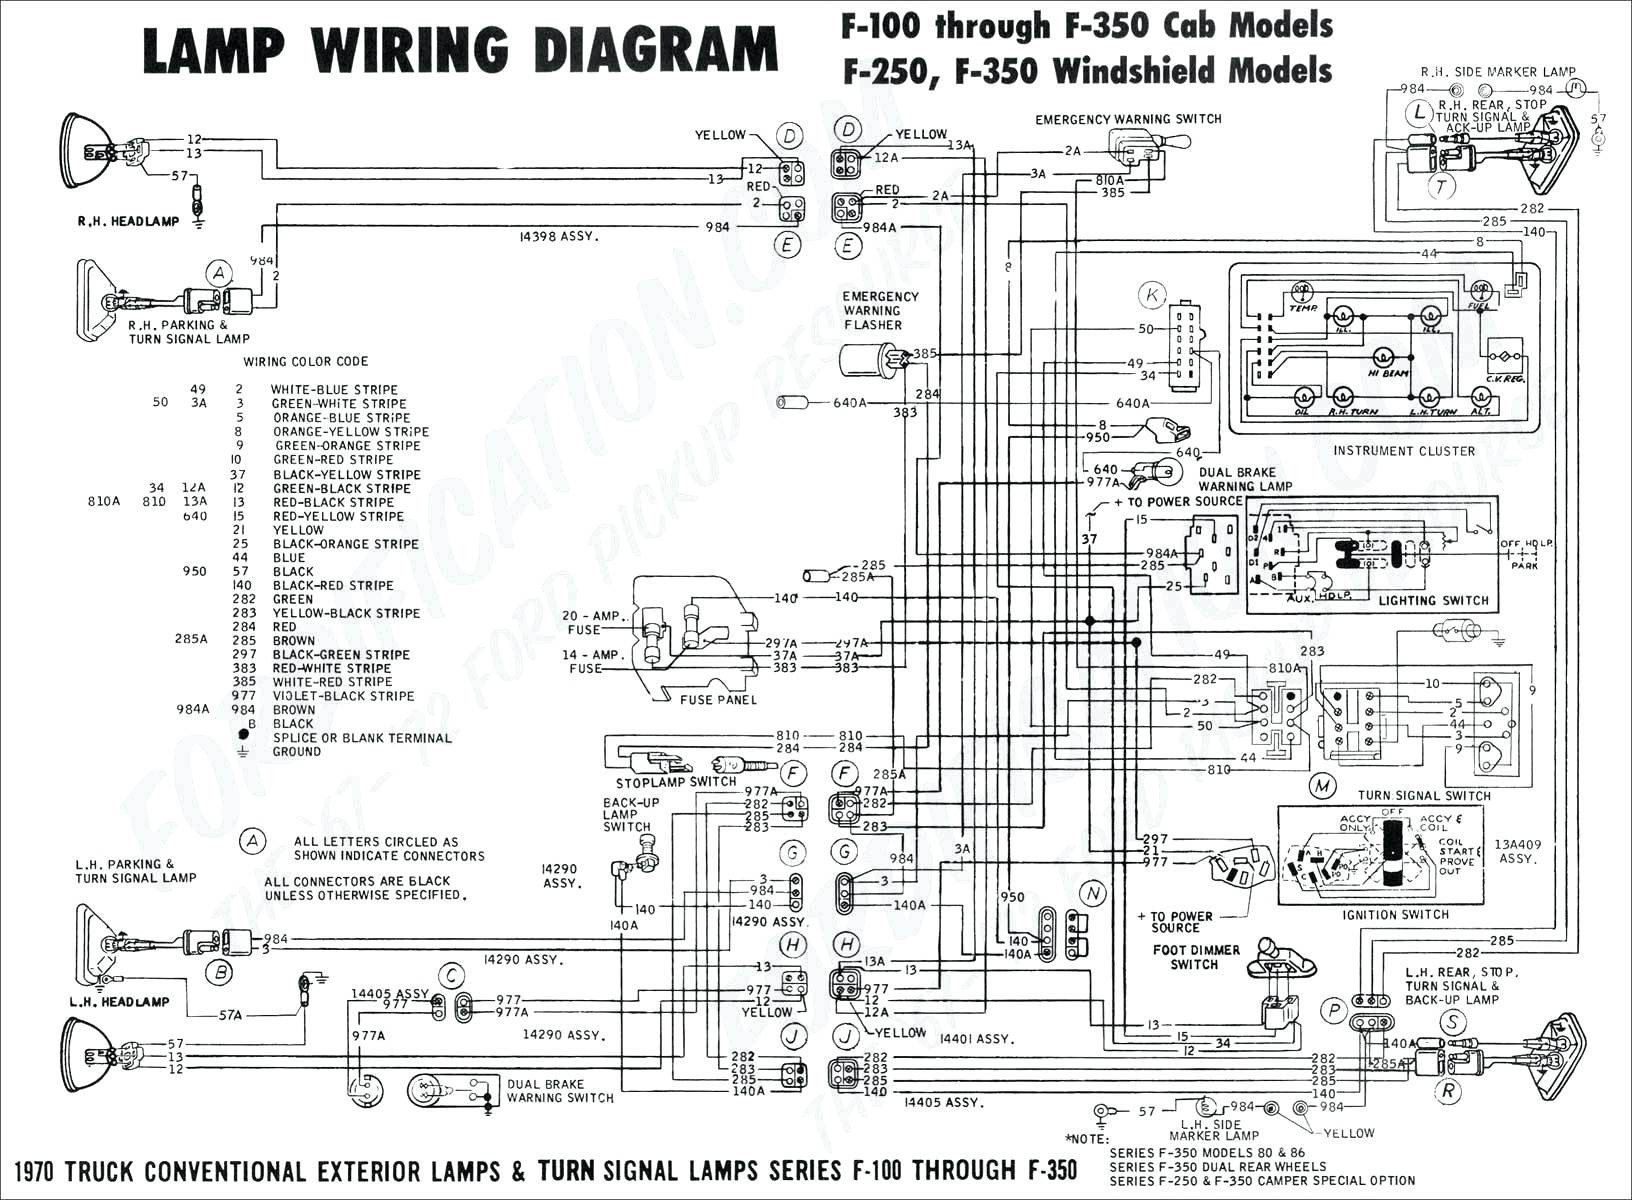 hight resolution of wiring diagram for 2005 chevy silverado wiring diagram 2005 chevy silverado wiring diagram stereo 2005 chevy silverado wiring diagram